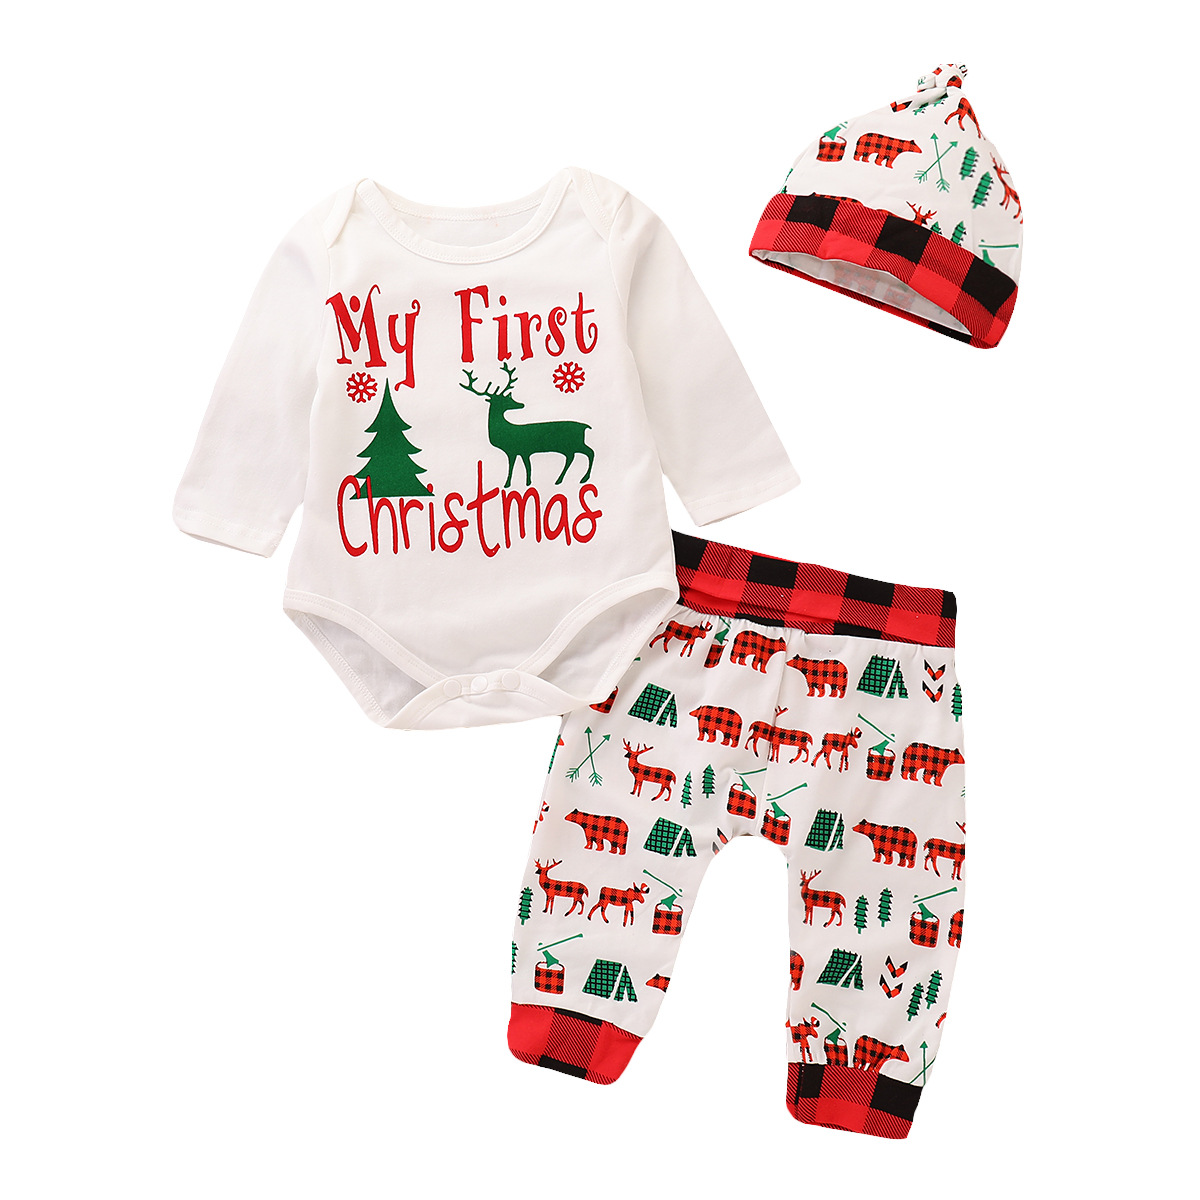 My First Christmas Baby Clothes Set Newborn Outfits Baby Girl Clothes Long Sleeve Romper Tops Deer Pant Hat Toddler Boy Clothing